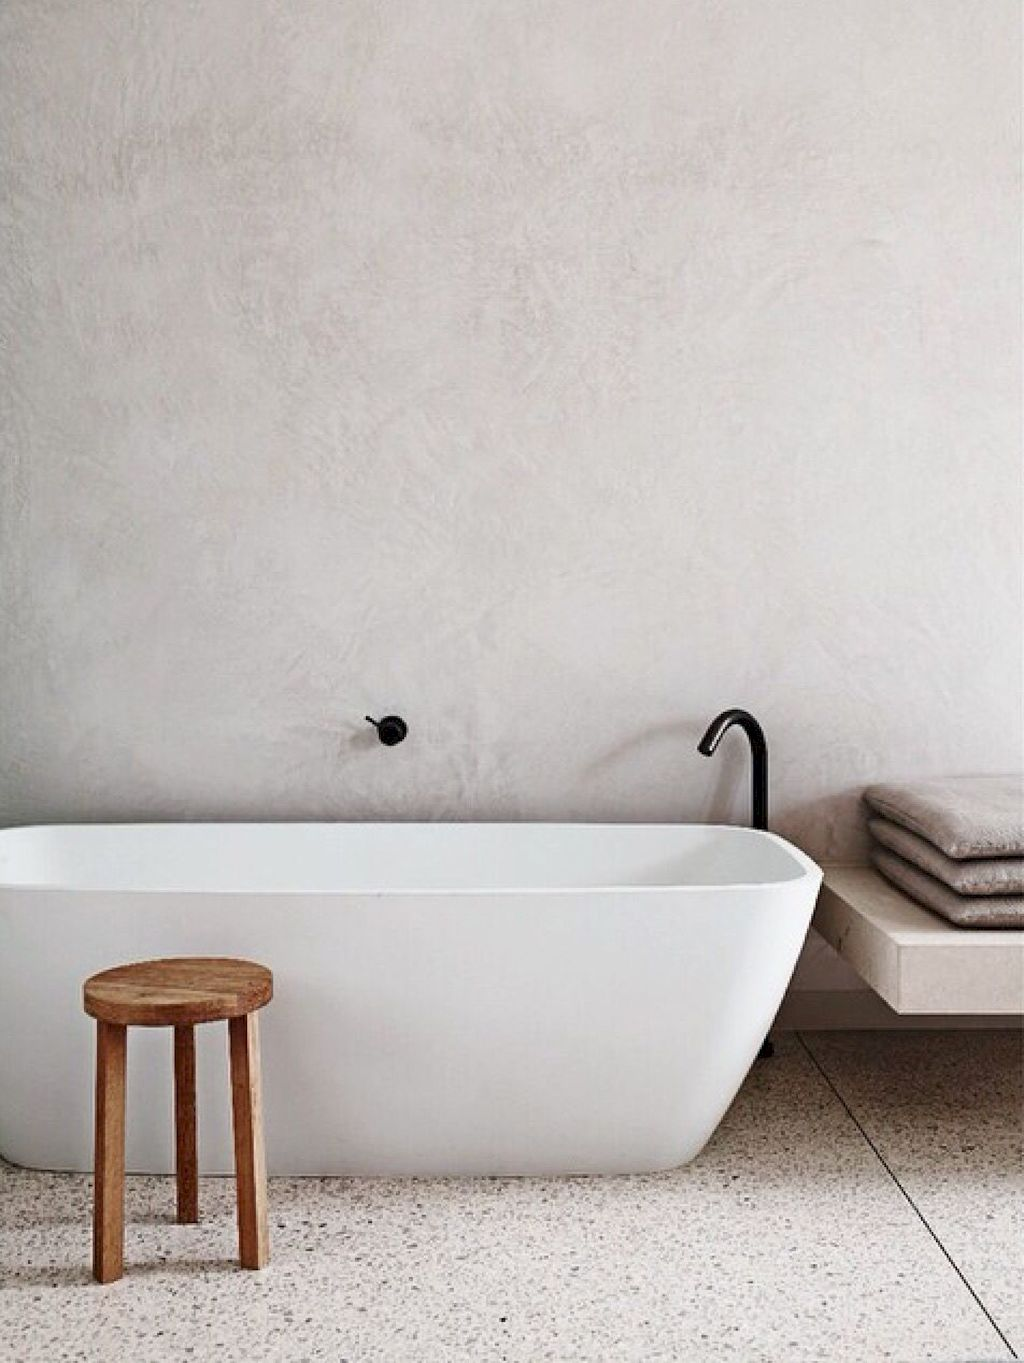 Creative bathroom updates mixing modern trend with simple 60s terrazzo style giving a brilliant contemporary balance Image 20